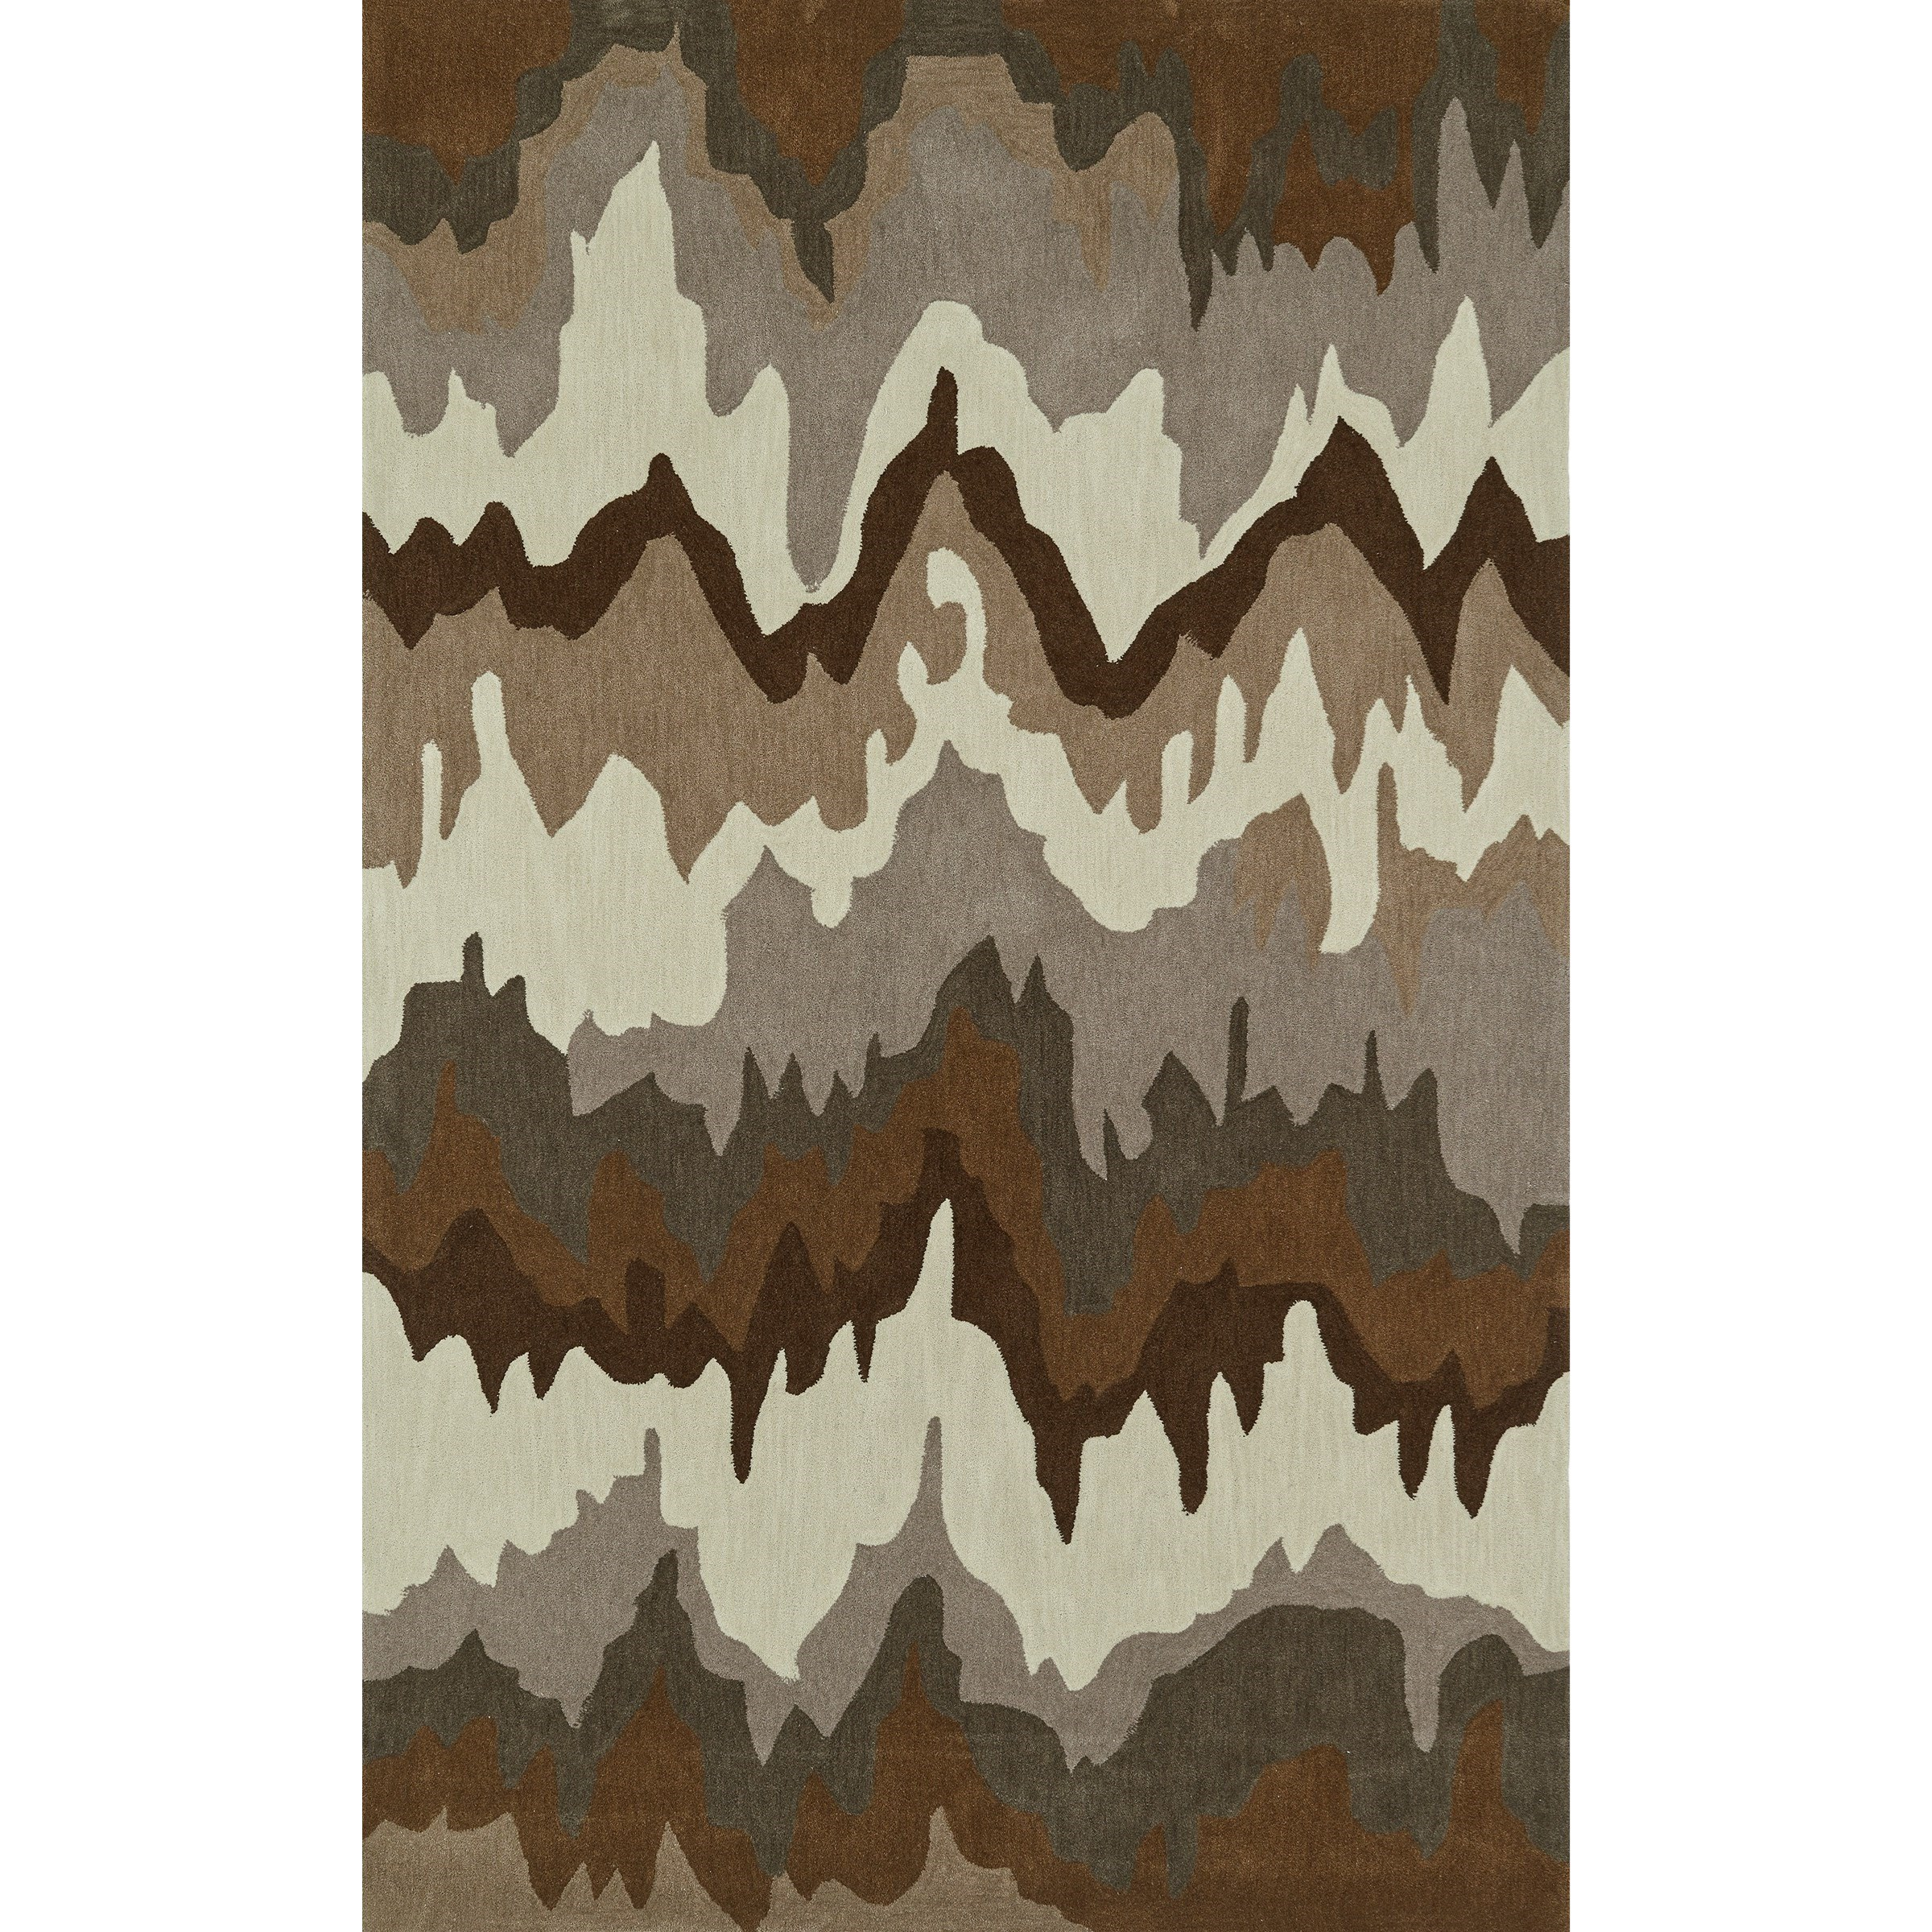 Journey Earth 8' x 10' Rug by Dalyn at Sadler's Home Furnishings